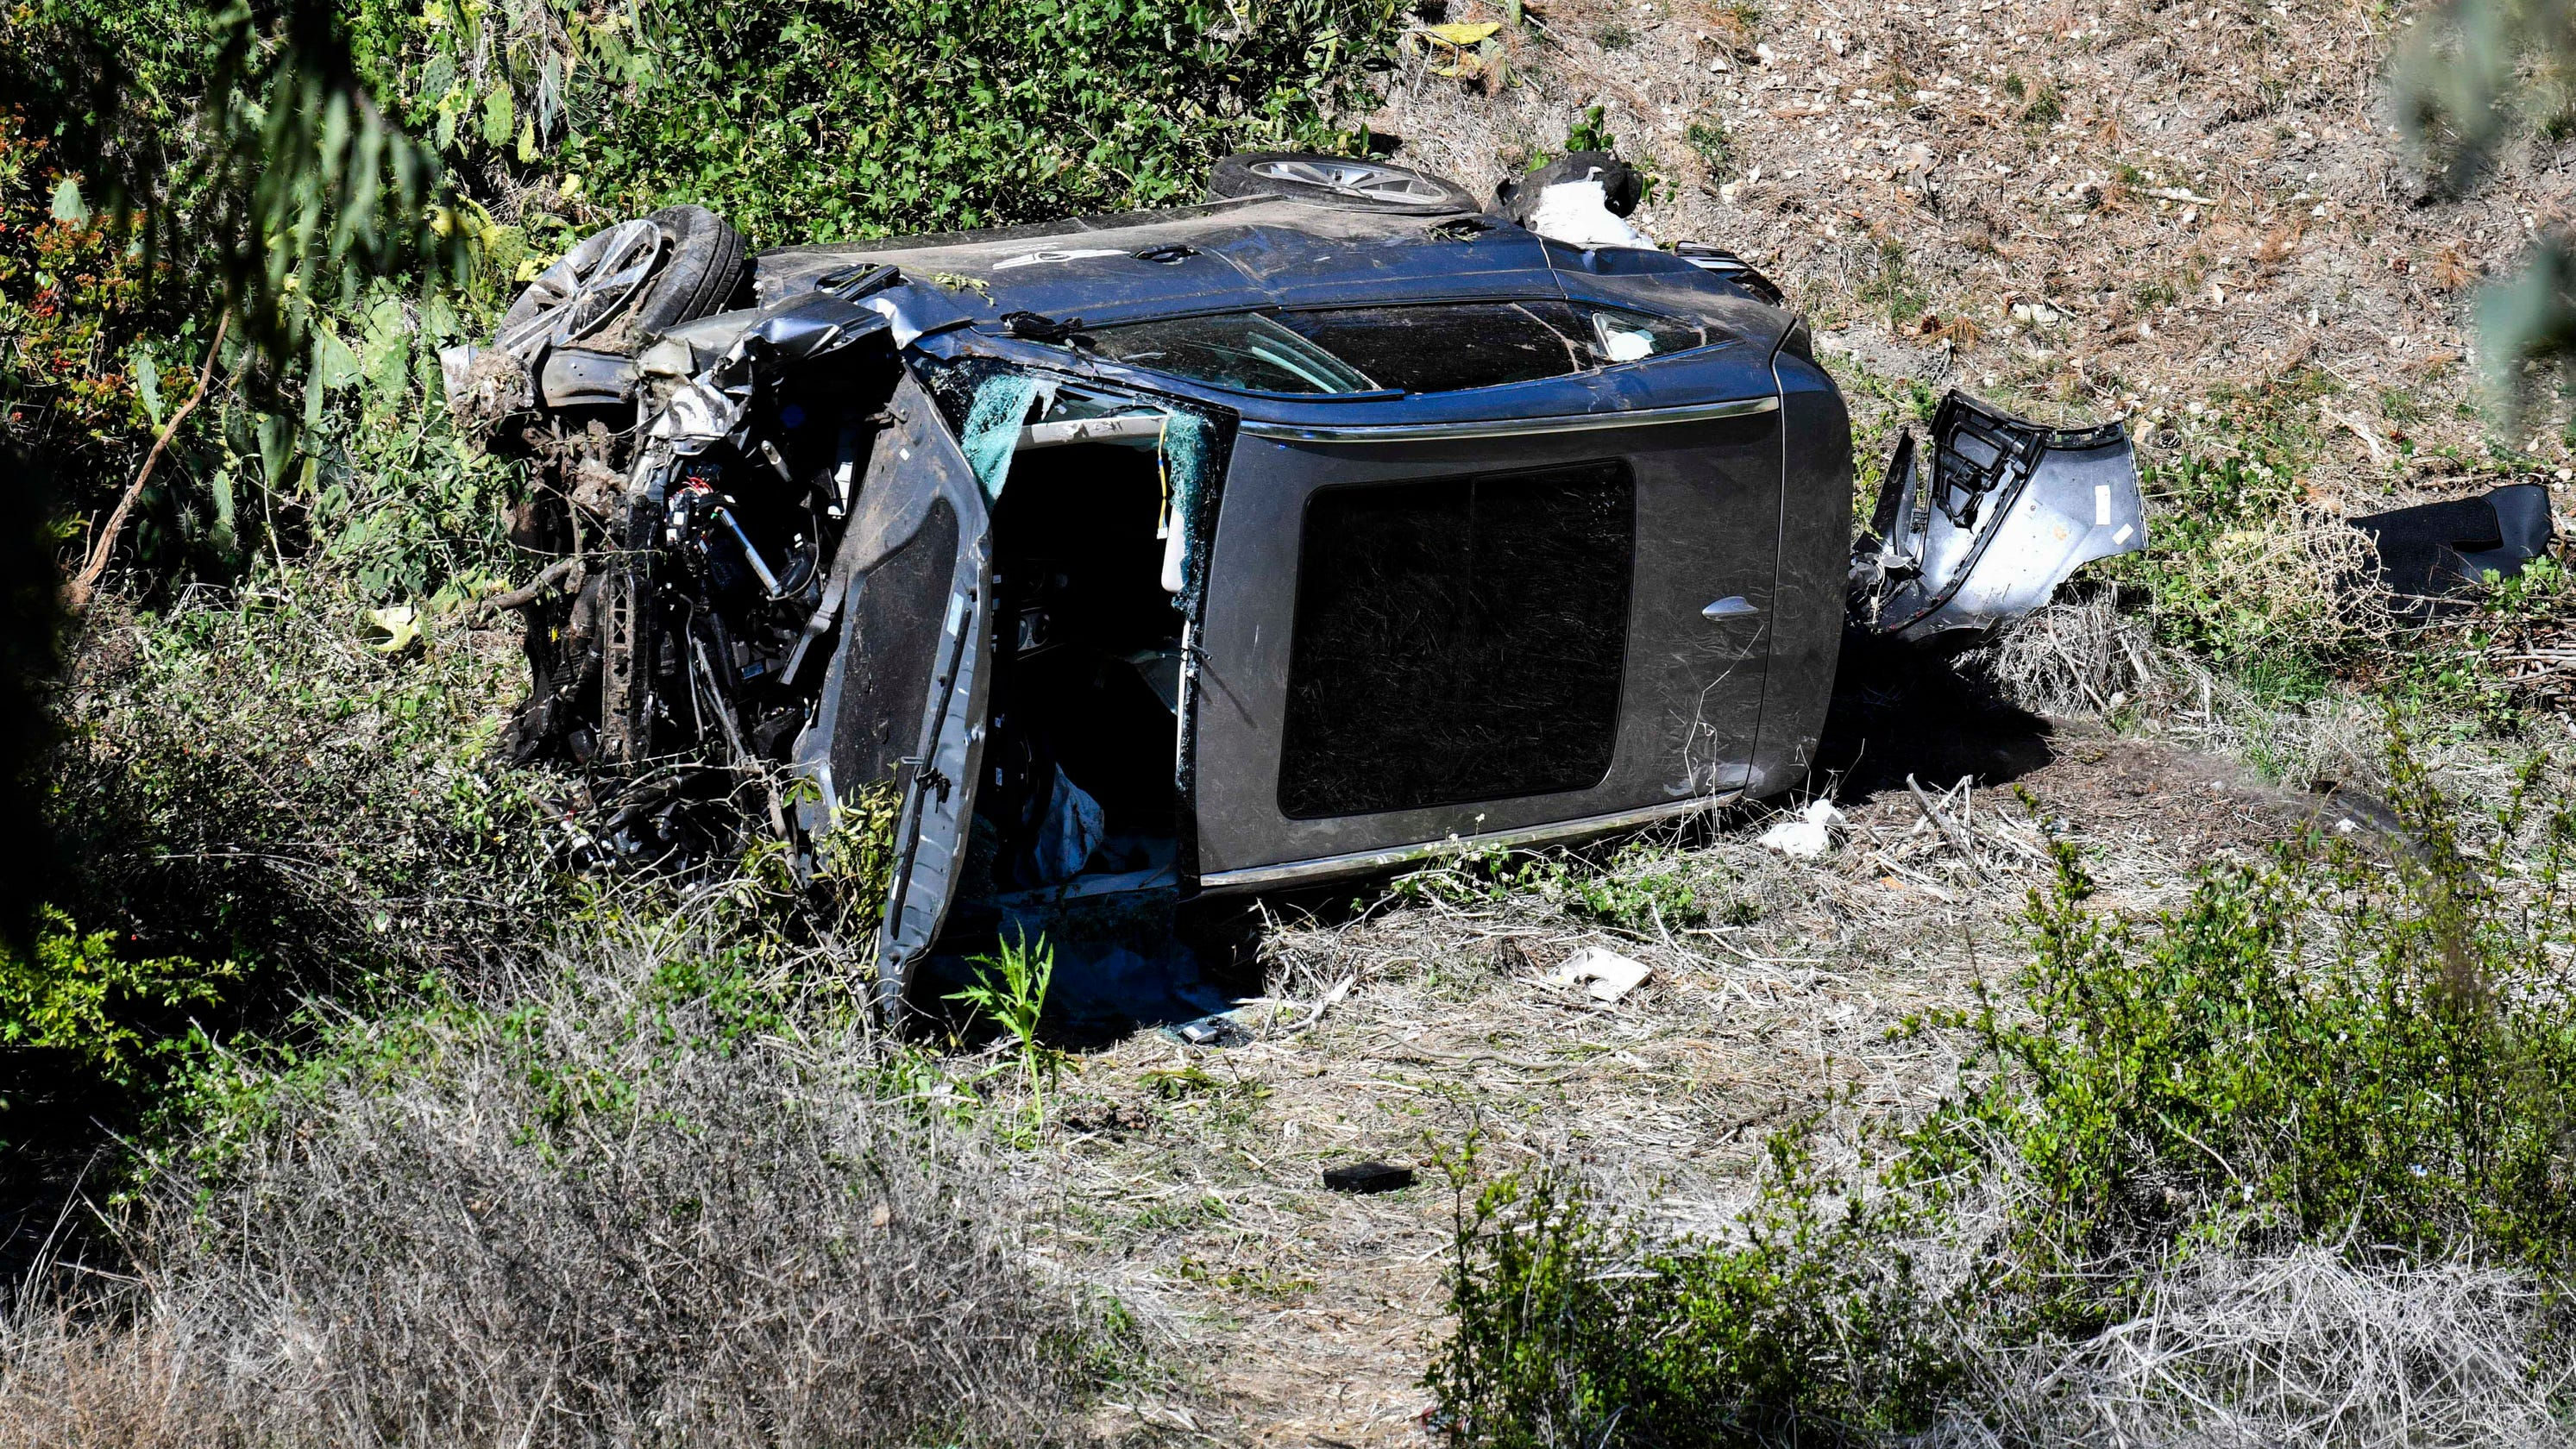 Tiger Woods suffers multiple leg injuries in single-car crash in Southern California